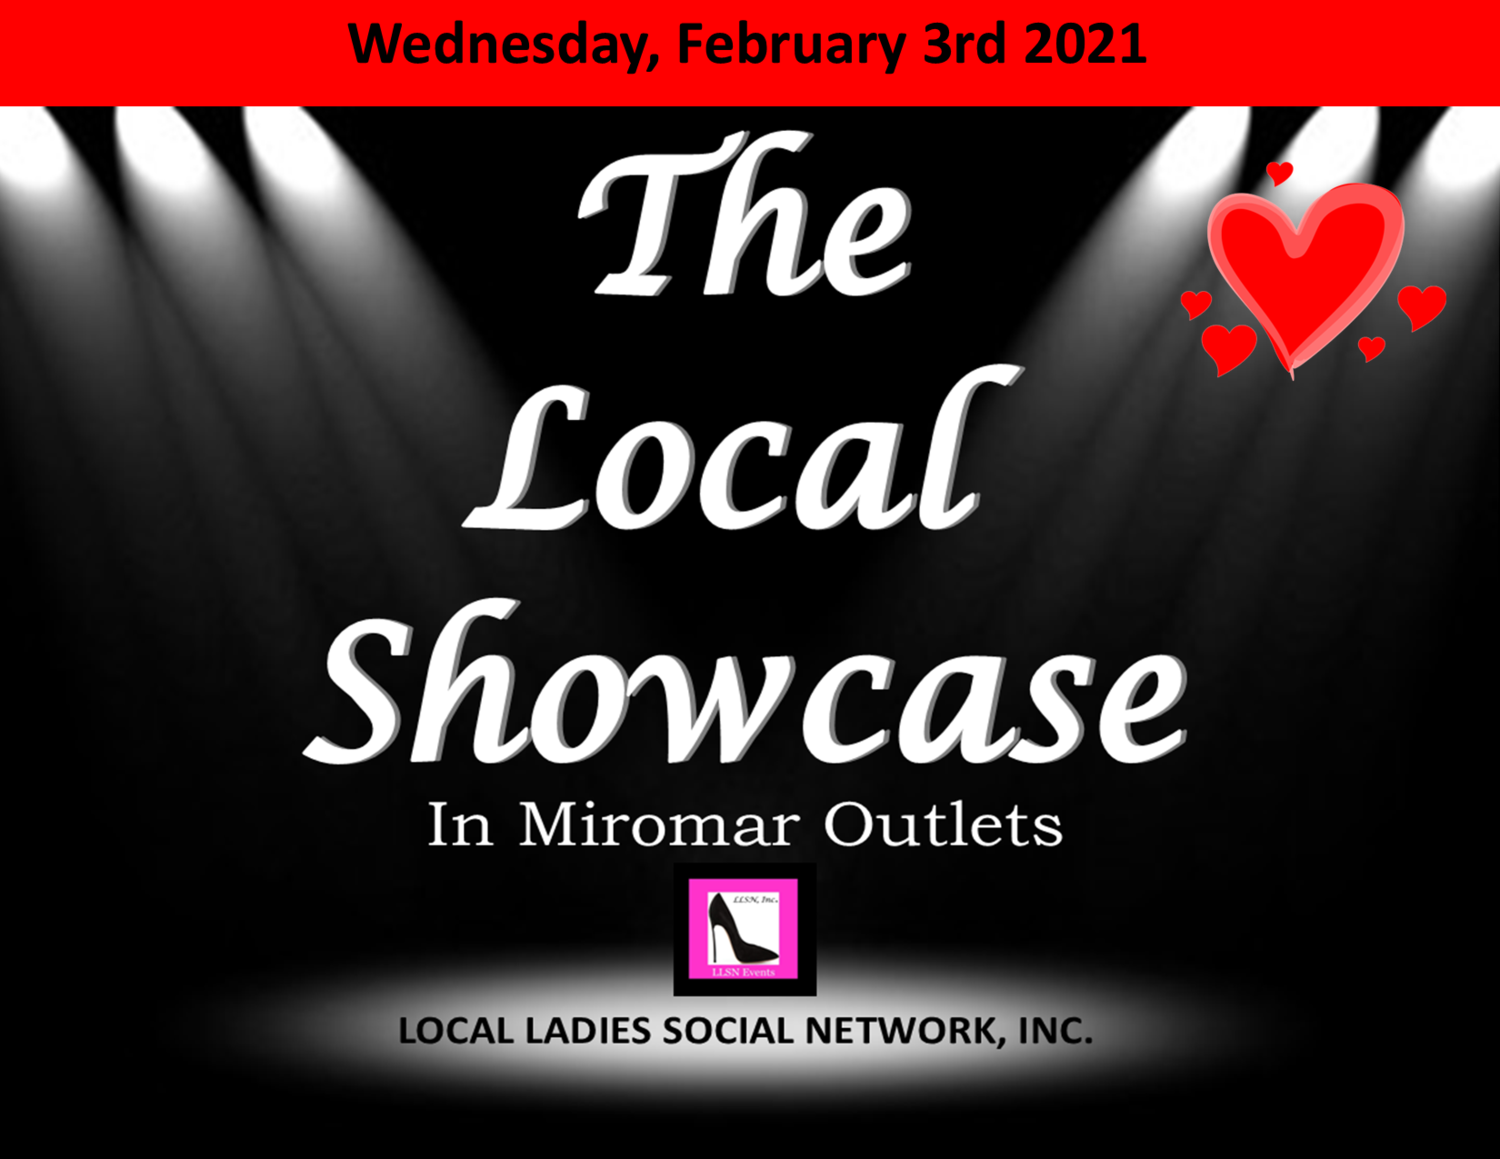 Wednesday, February 3rd 11am-7pm